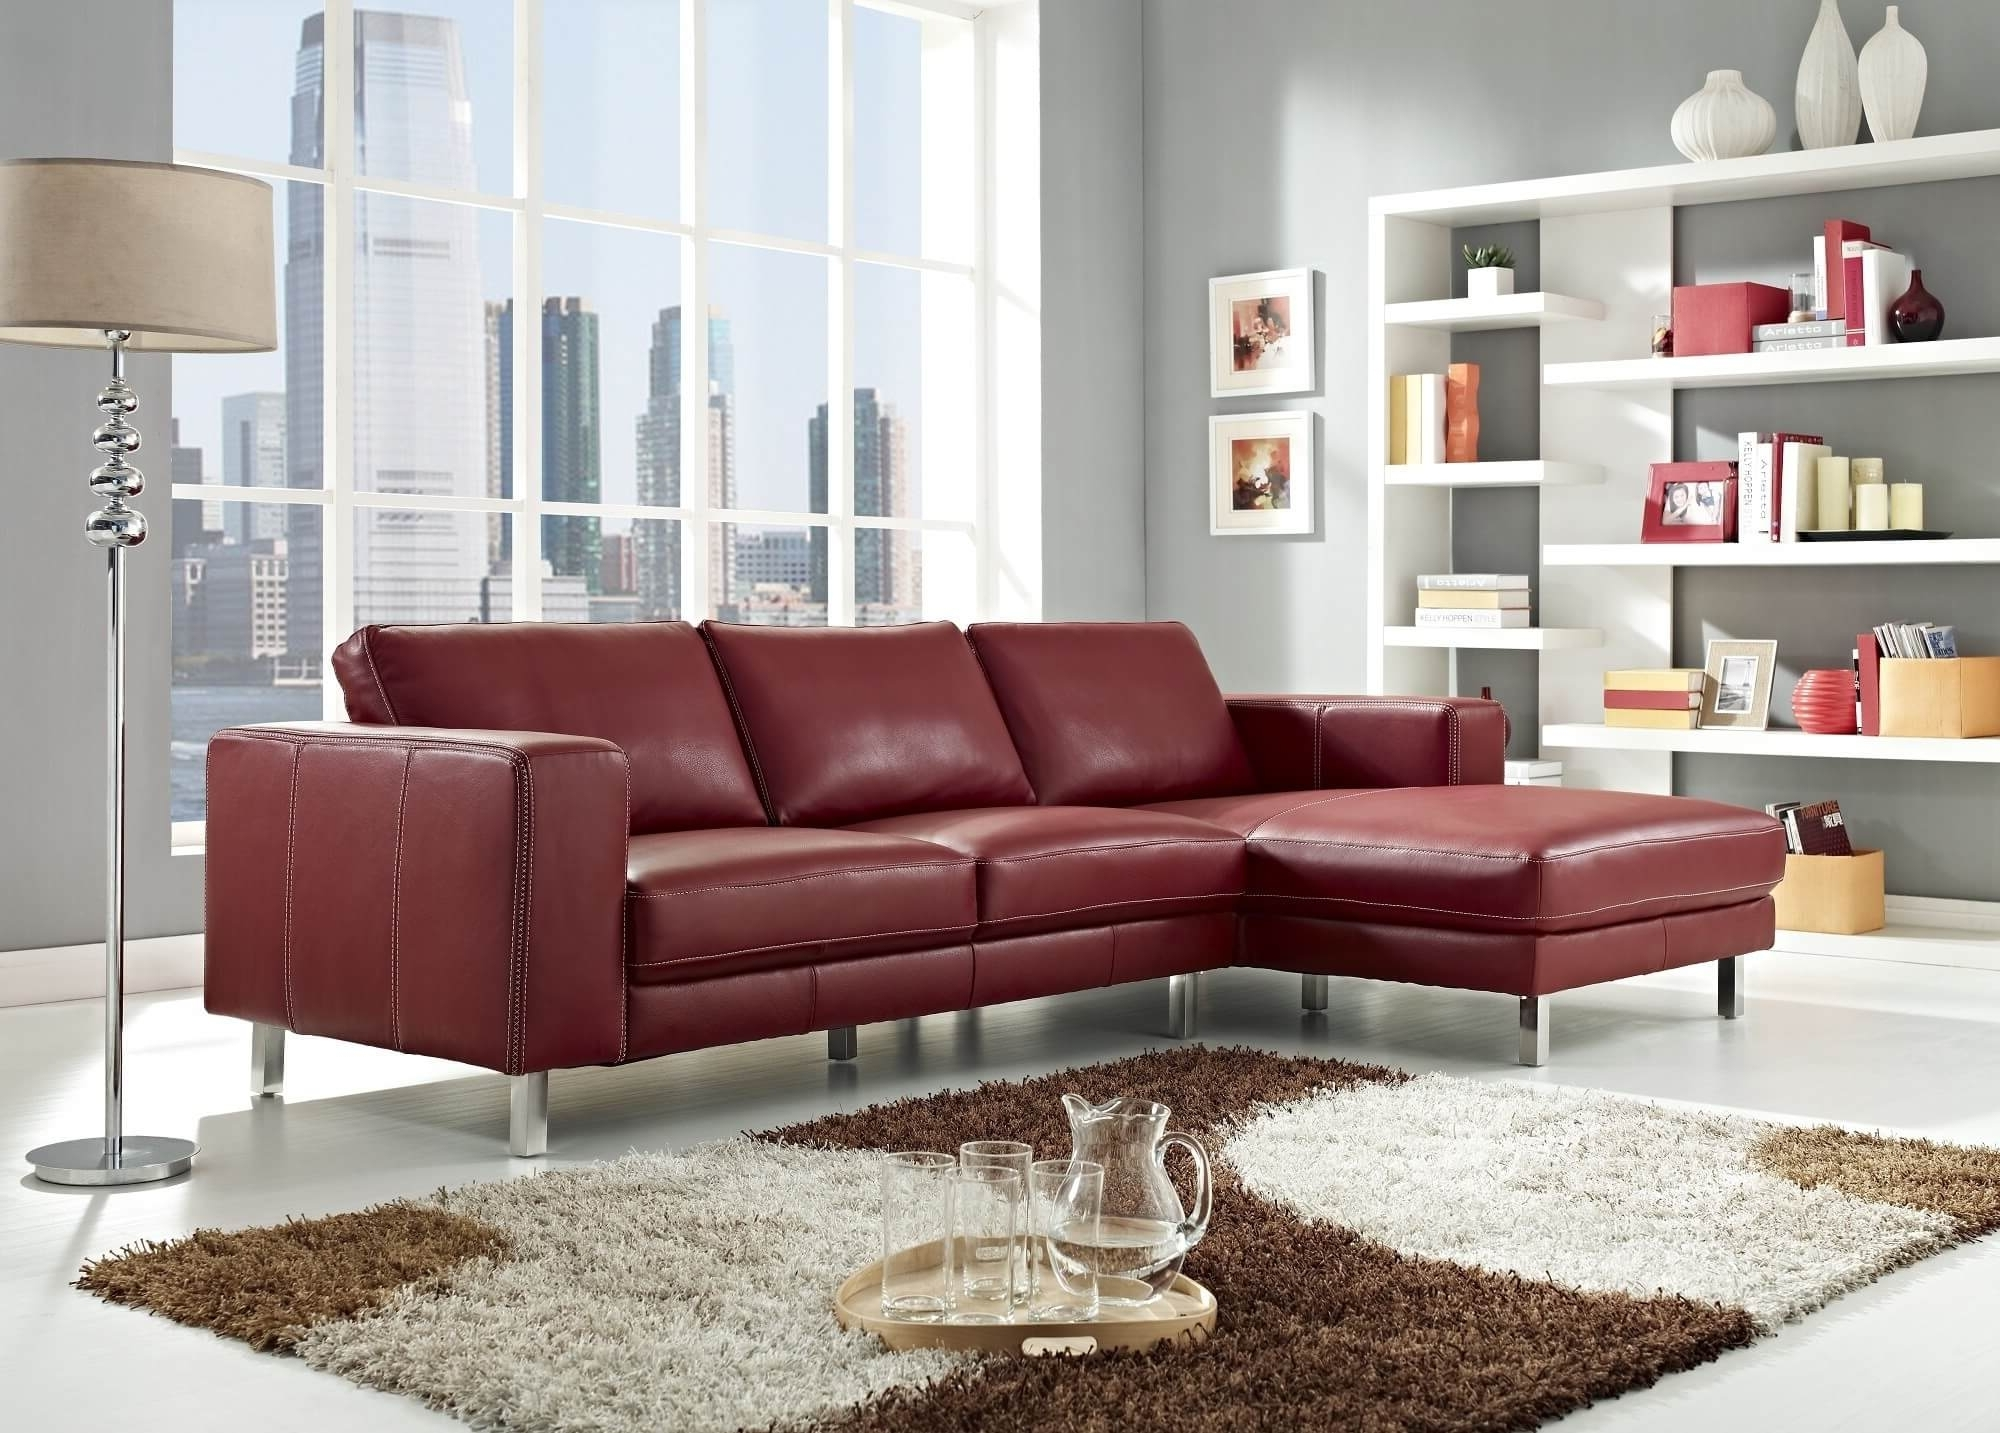 Elegant Sectional Sofas With Regard To Preferred Stylish Modern Red Sectional Sofas (View 9 of 15)